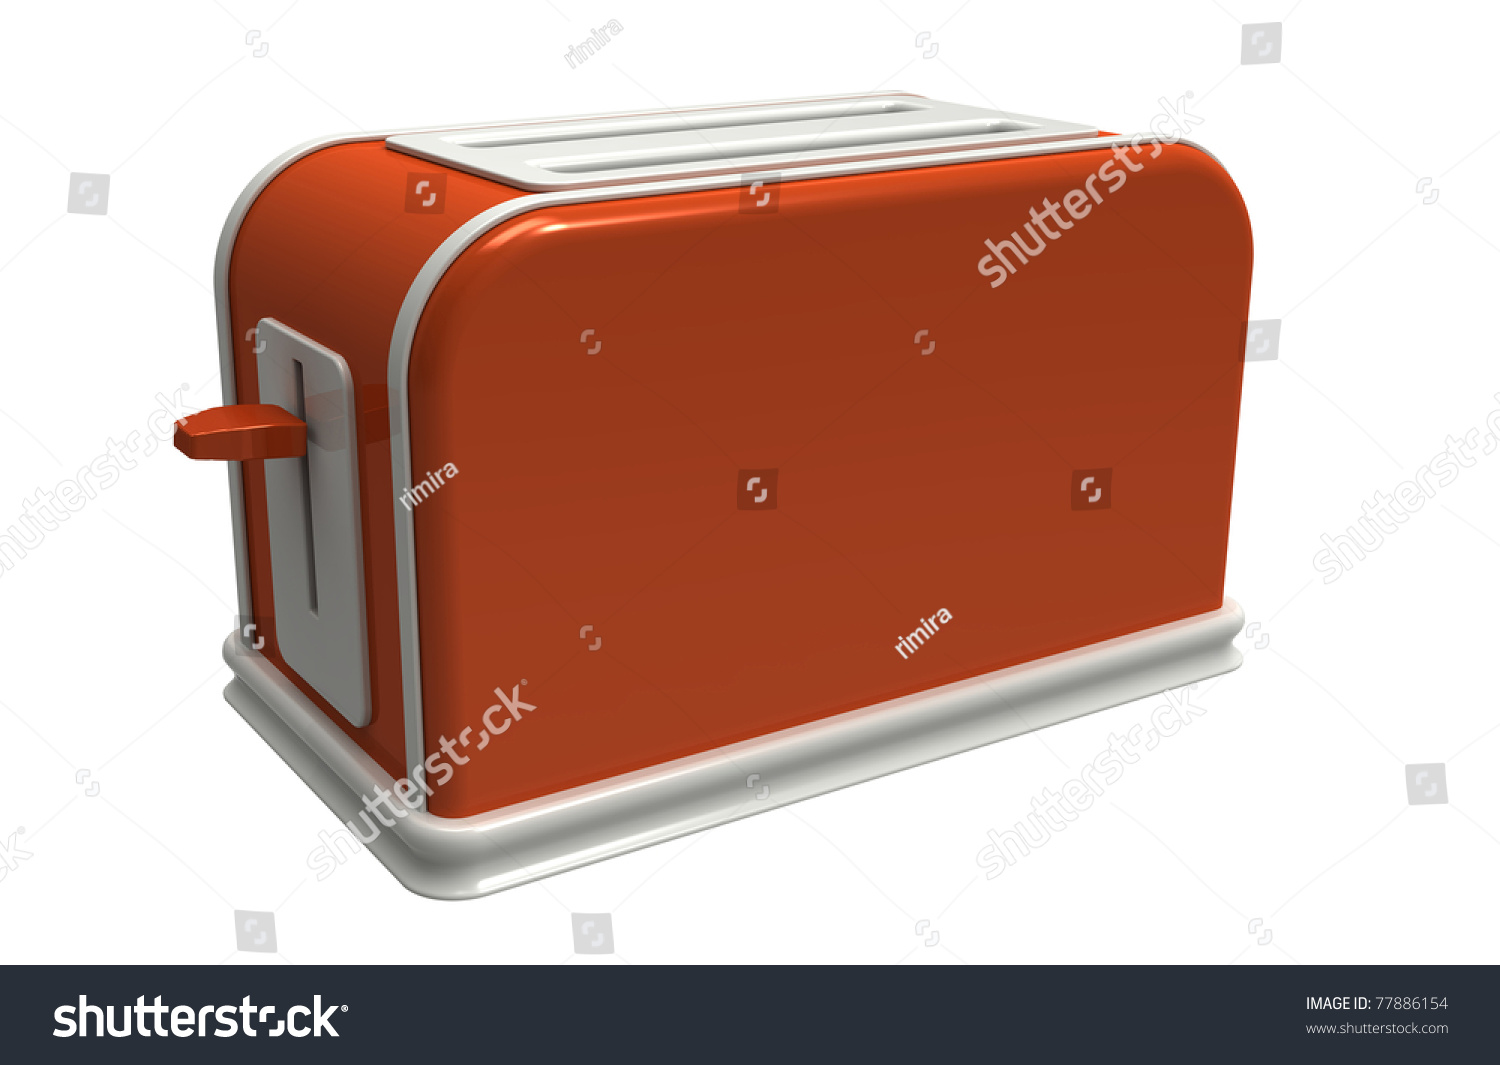 3d render of orange toaster on a white background stock photo 77886154 shutterstock. Black Bedroom Furniture Sets. Home Design Ideas